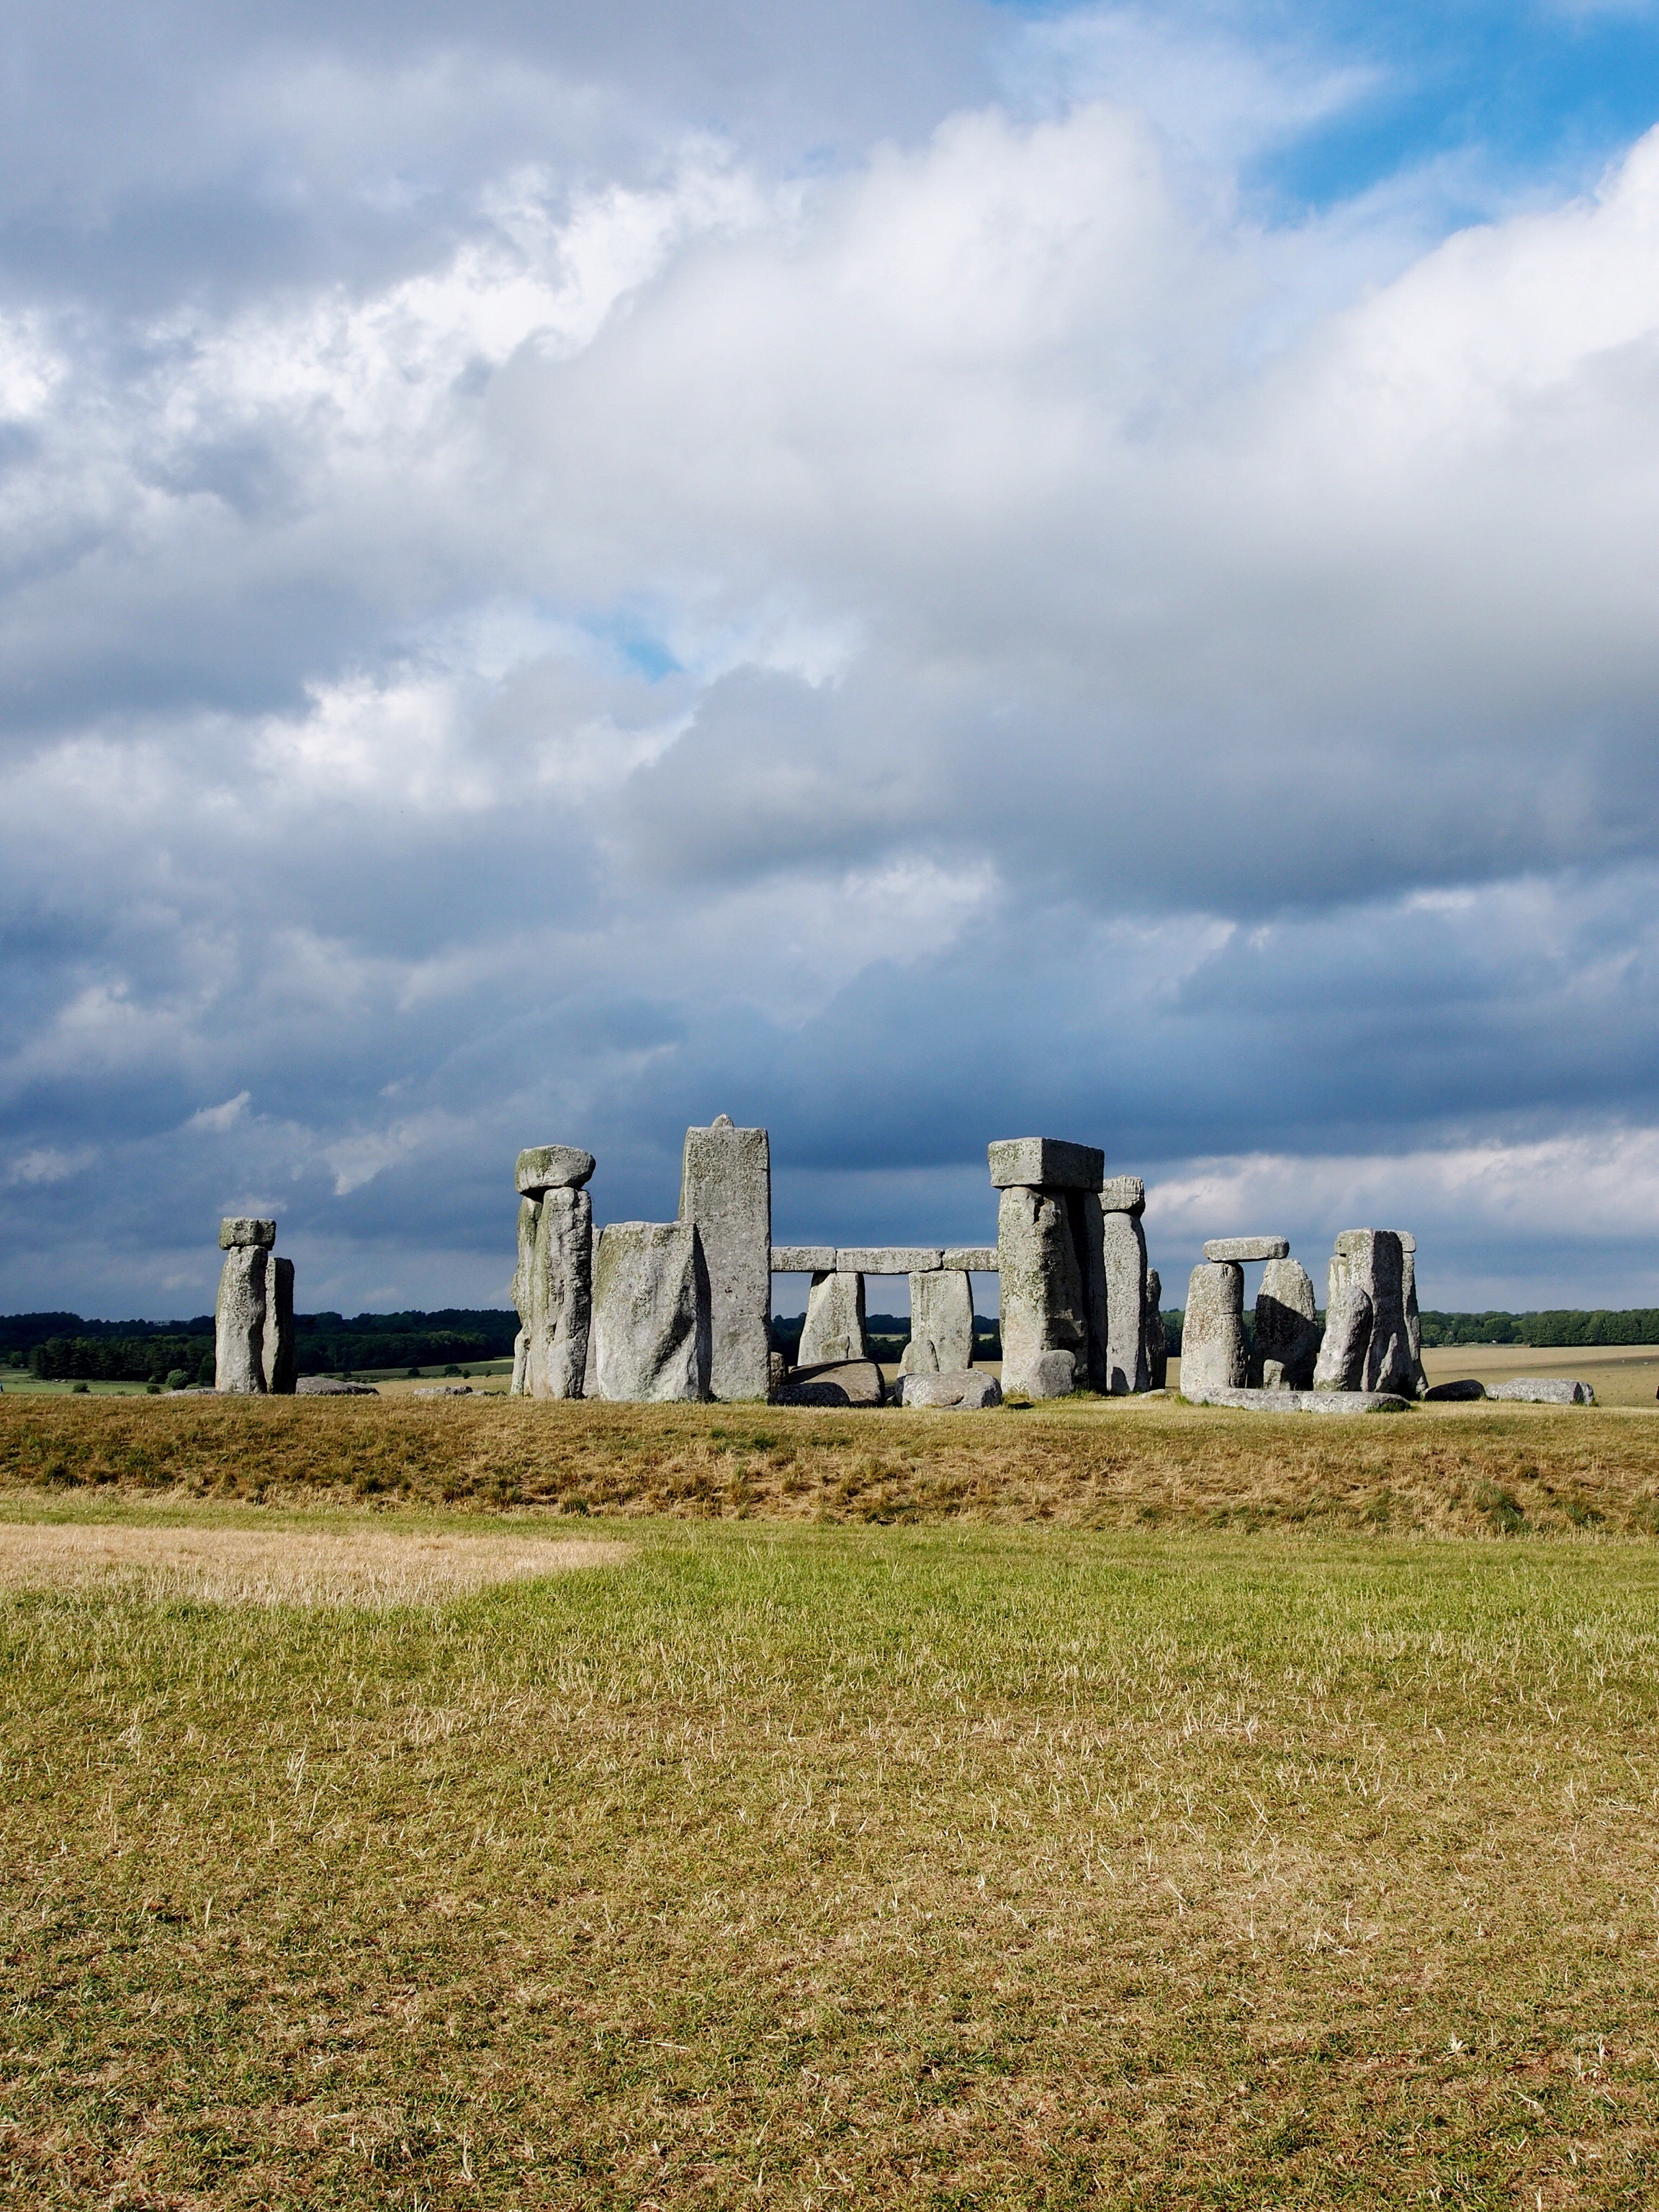 Summer evening at Stonehenge, Wiltshire, England | Conversation Pieces